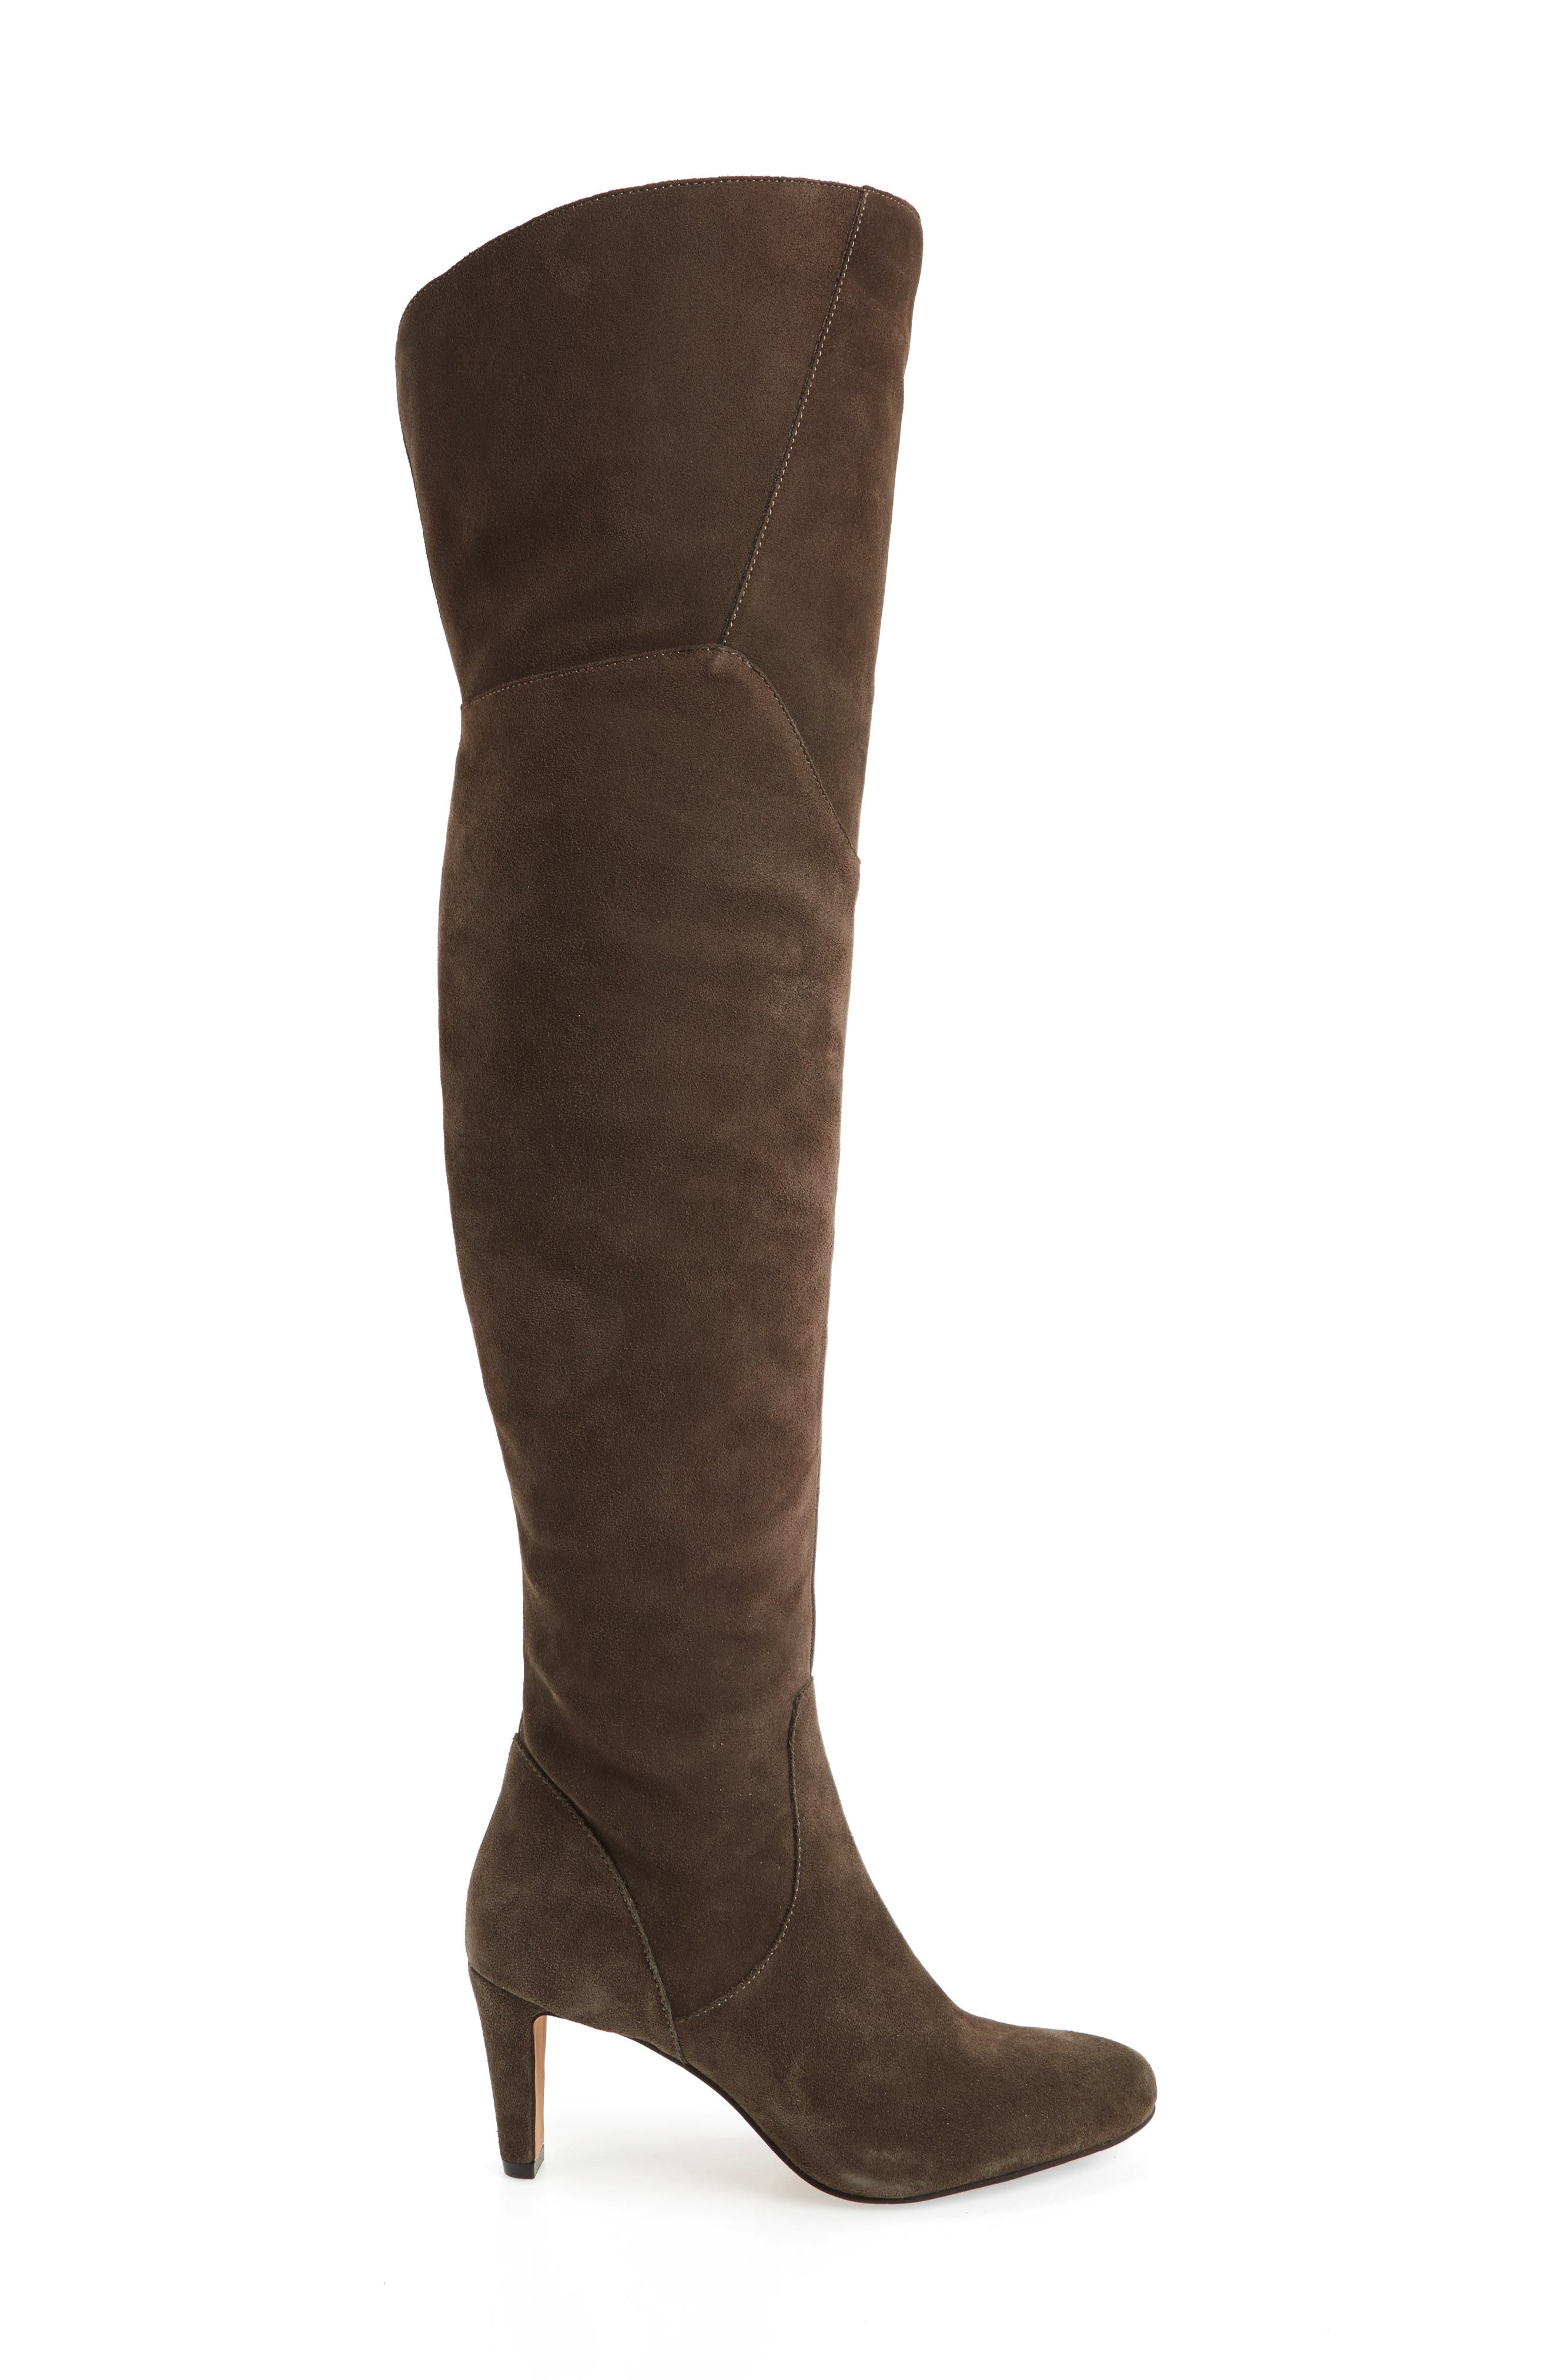 Armaceli Over the Knee Boot,                             Alternate thumbnail 12, color,